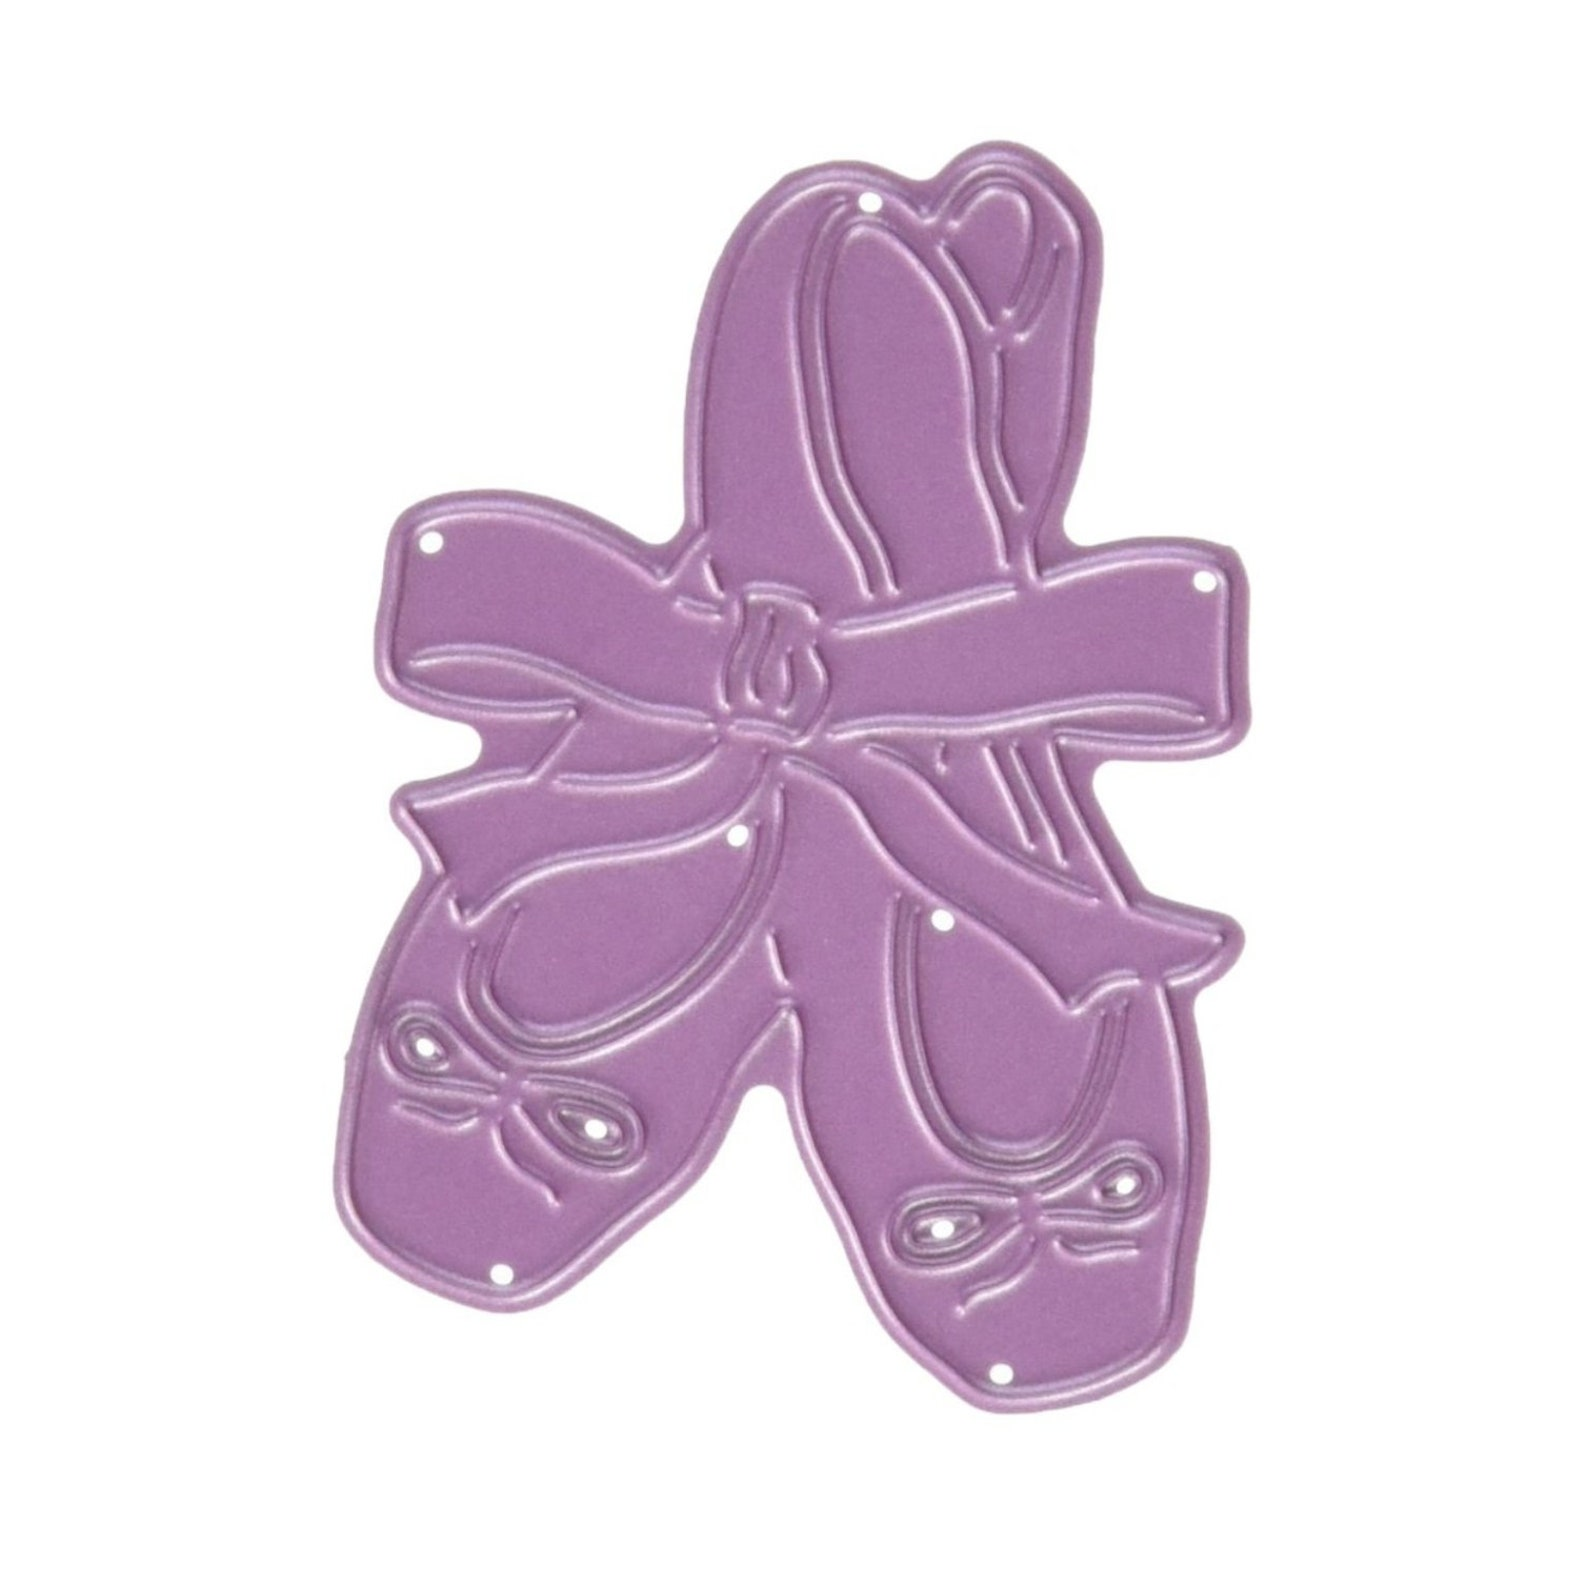 ballet slippers die cut ballerina toe shoes cheery lynn cutting dies b589 for handmade cards,scrapbook pages,cuttlebug,sizzix,ot